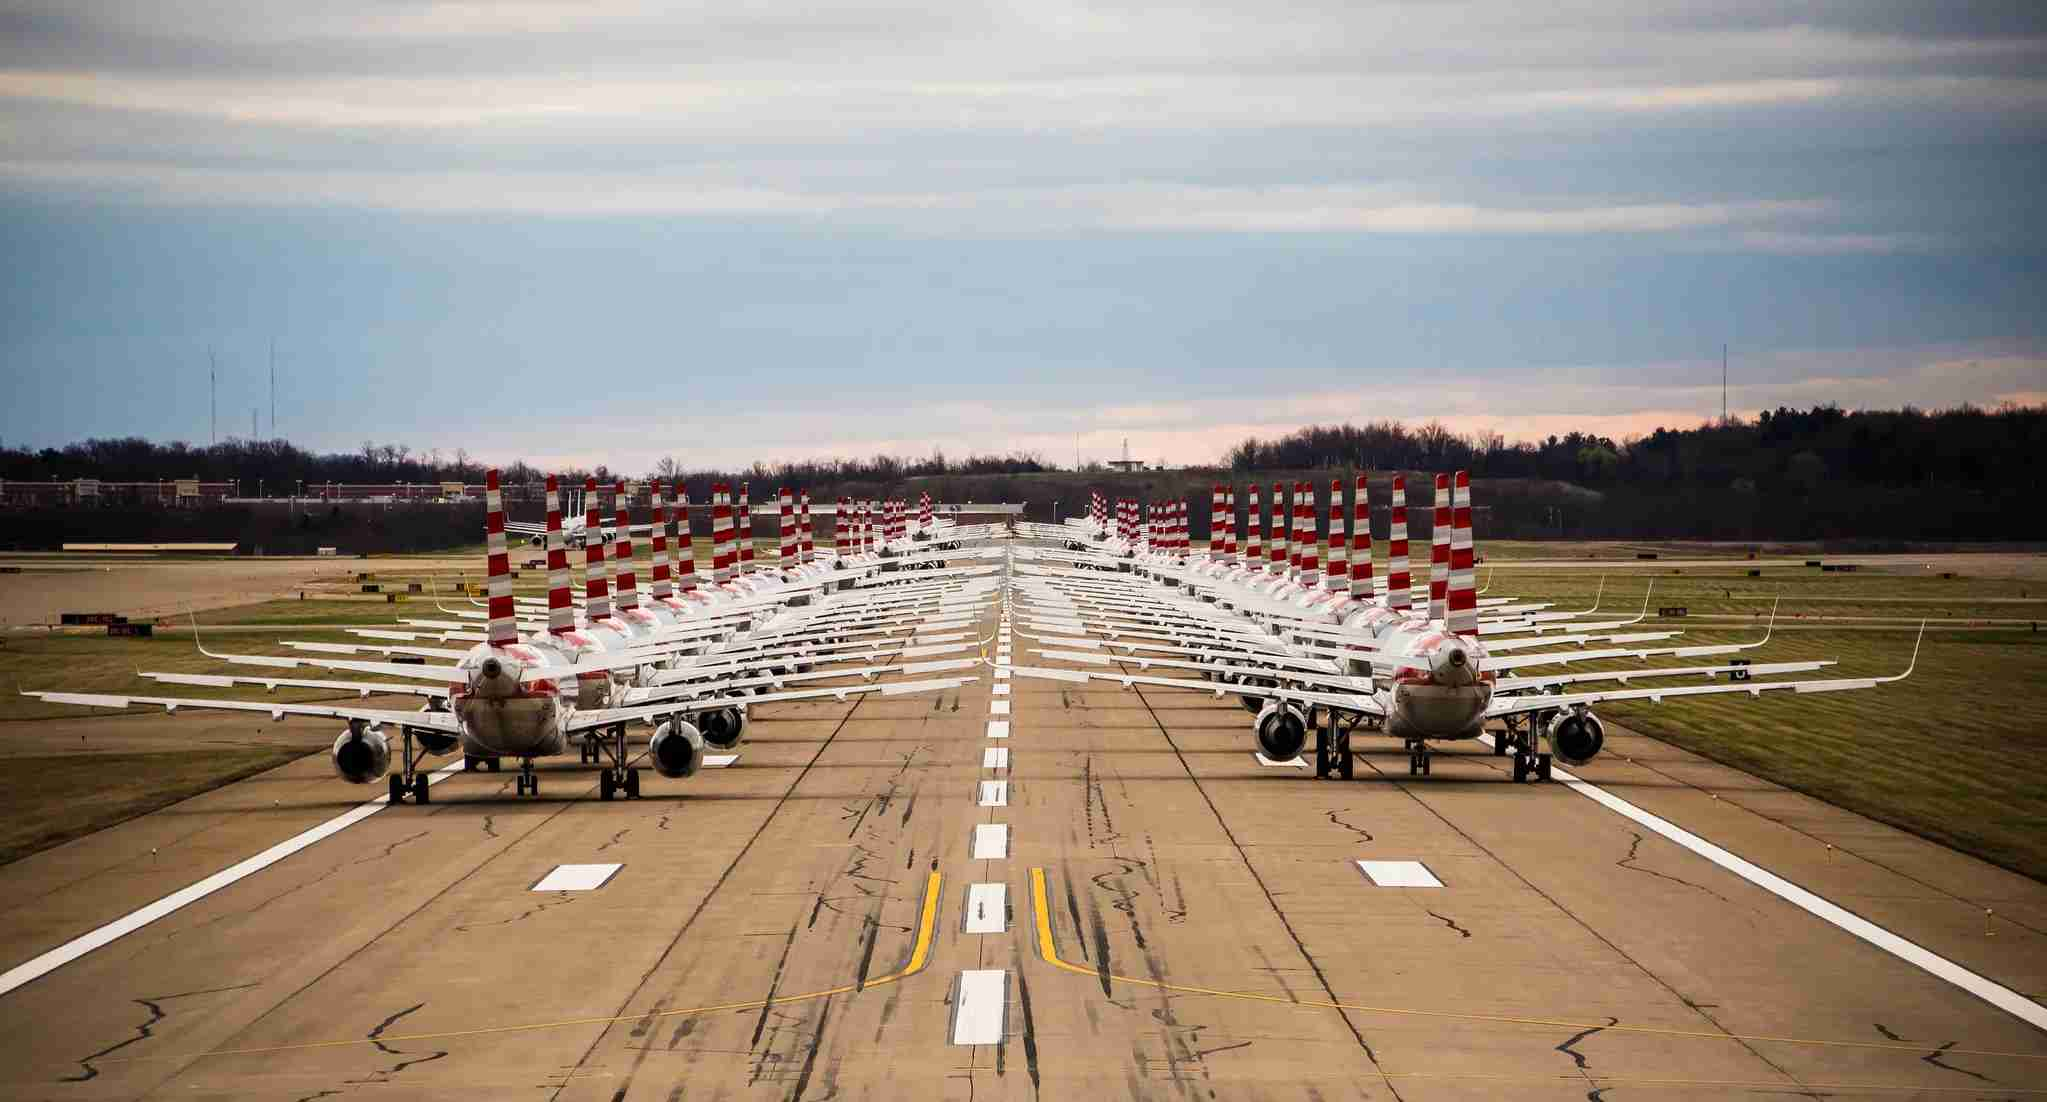 American Airlines jets parked on a runway at Pittsburgh International Airport. (Image courtesy of Pittsburgh International Airport.)